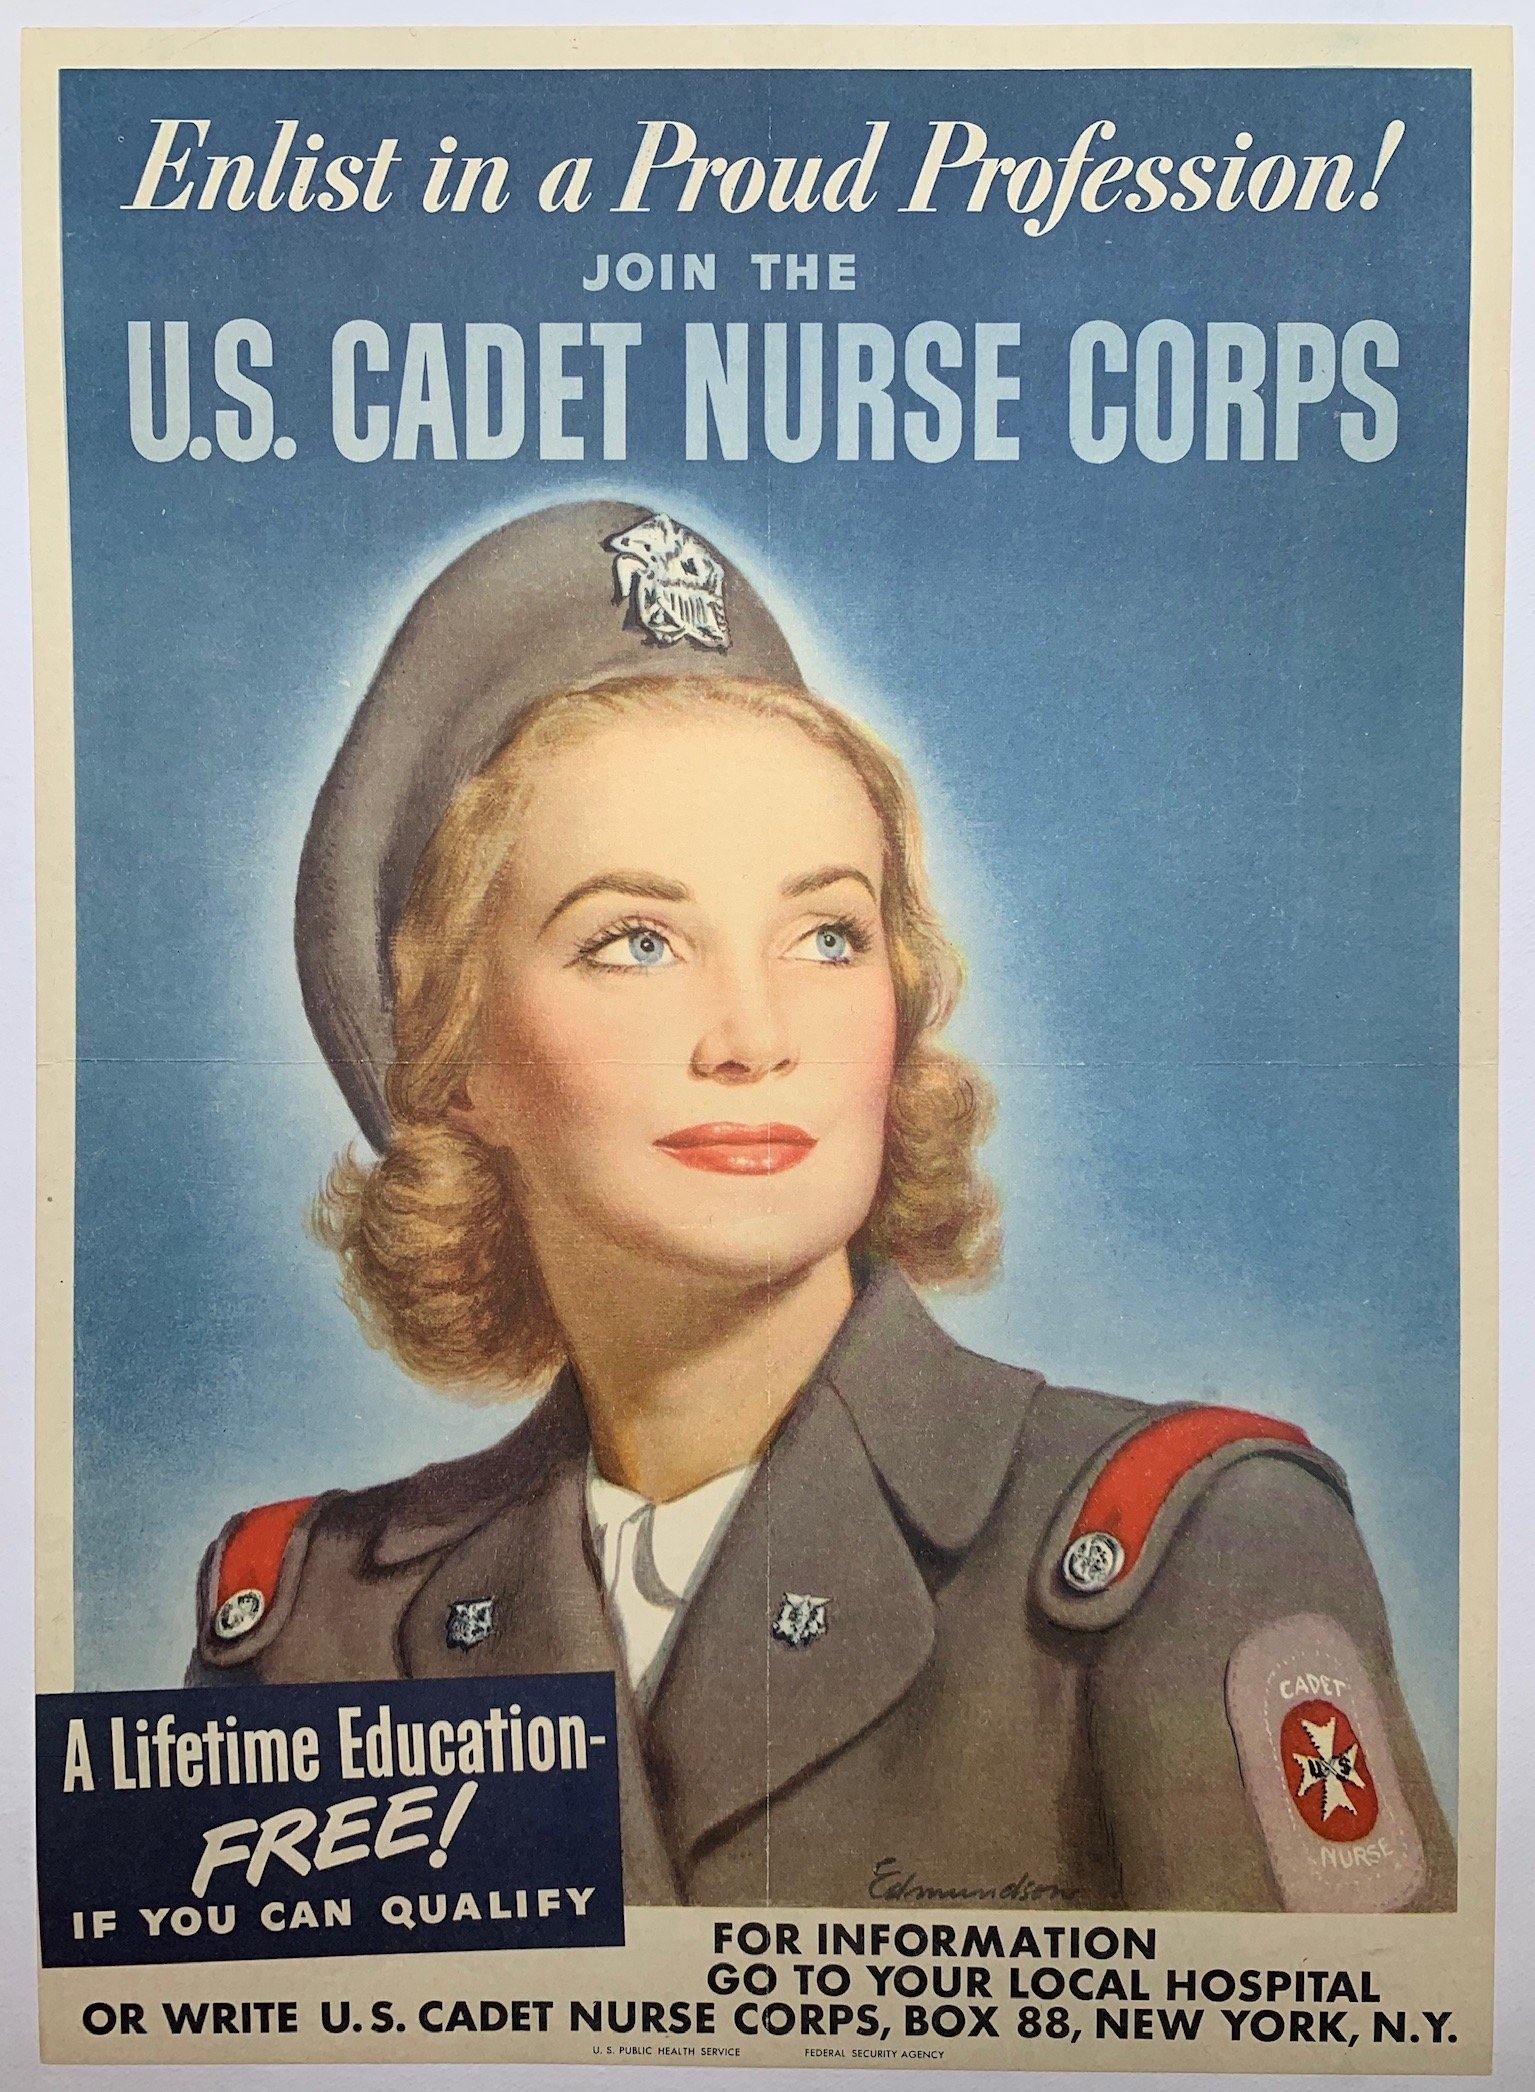 Enlist in a Proud Profession! Join the U.S. Cadet Nurse Corps.